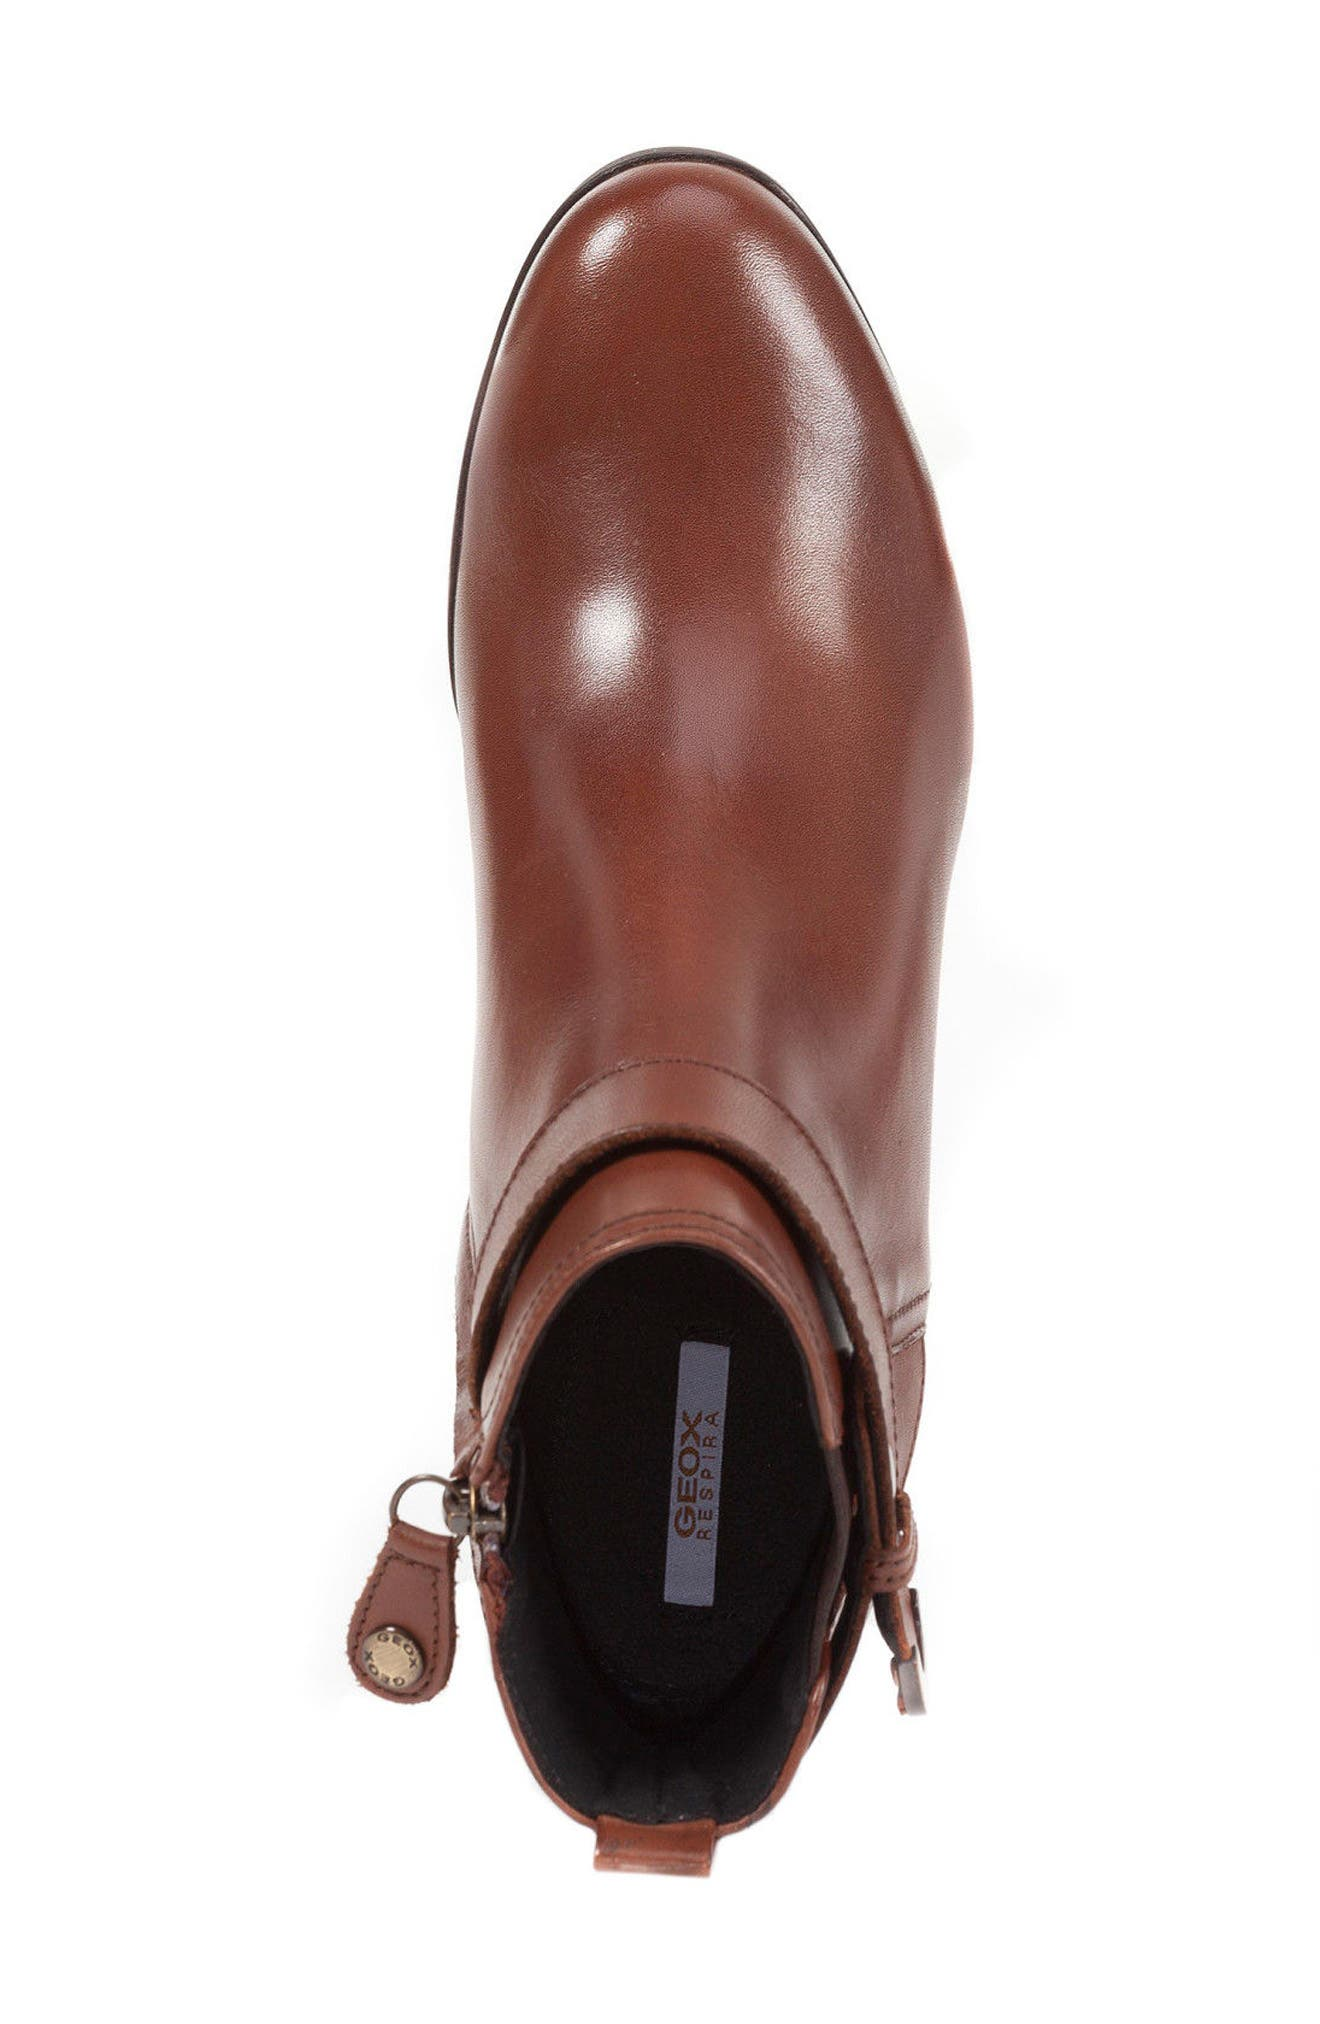 Inspiration Buckle Wedge Bootie,                             Alternate thumbnail 4, color,                             Brown Leather